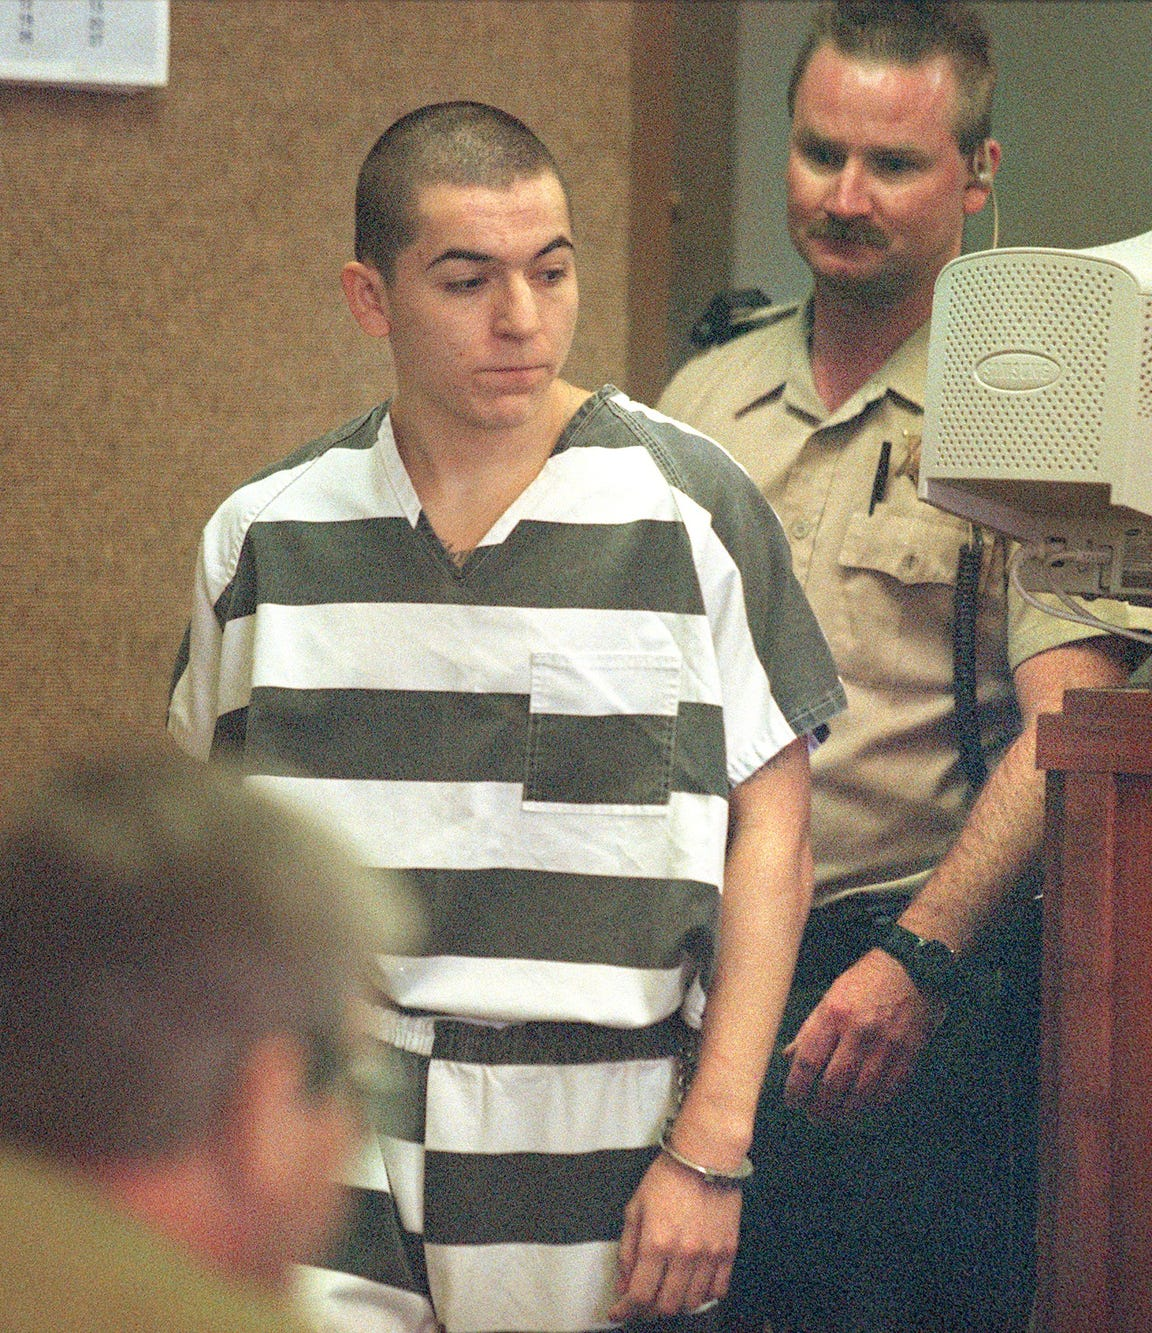 In this 2001 file photo, Samuel Espinoza is brought into Judge Darryl Ferguson's courtroom at the Tulare County Courthouse for sentencing for the shooting of 13-year-old Nancy Saechao.